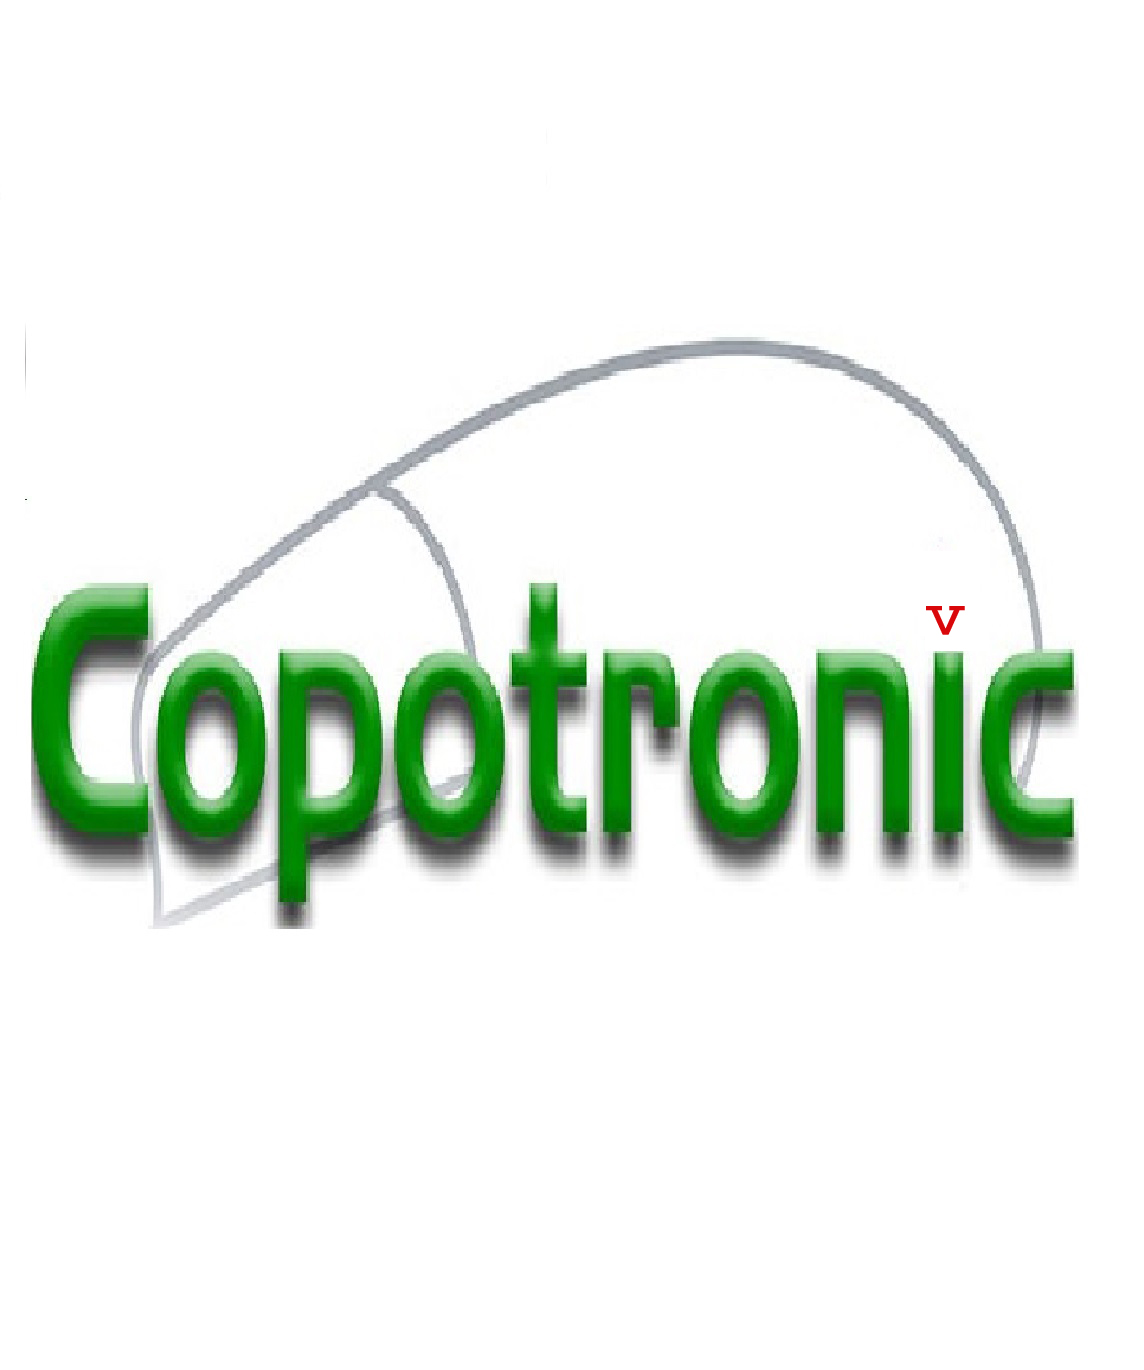 Copotronic InfoSystems Limited